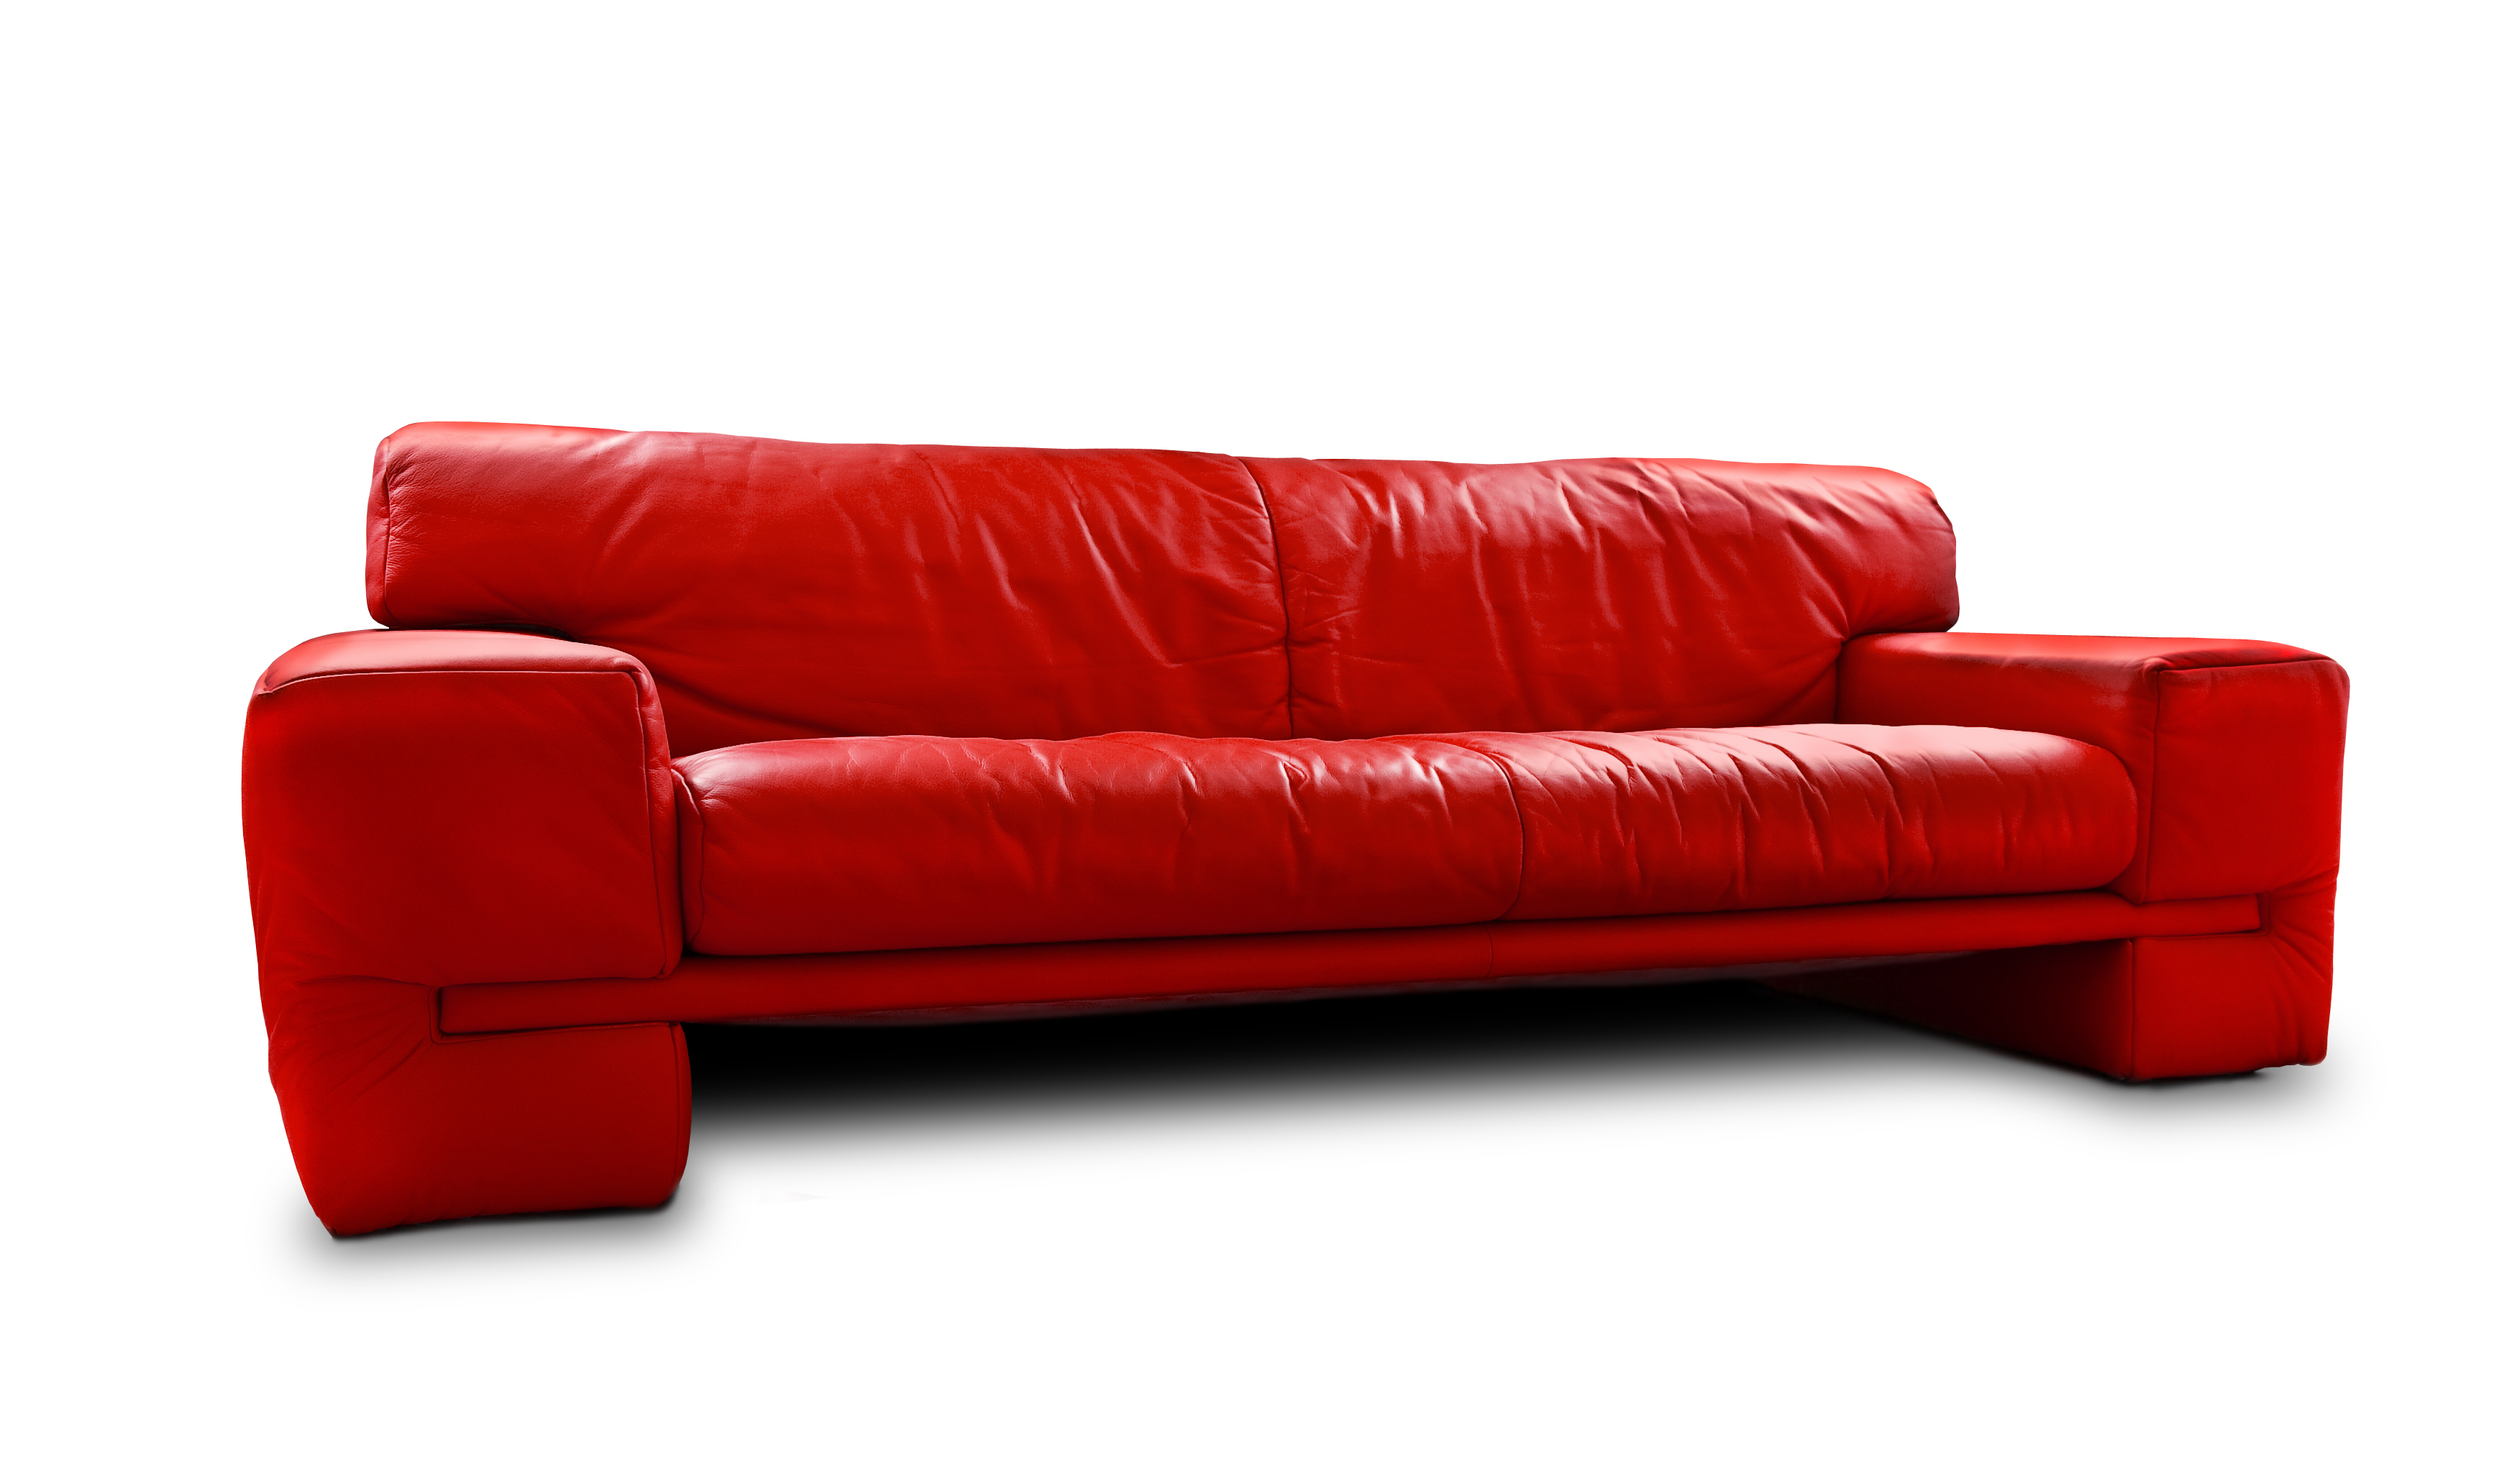 Favorite Red Sofas And Chairs Pertaining To Furniture: Excellent Living Room Furniture Design With Elegant (Gallery 18 of 20)